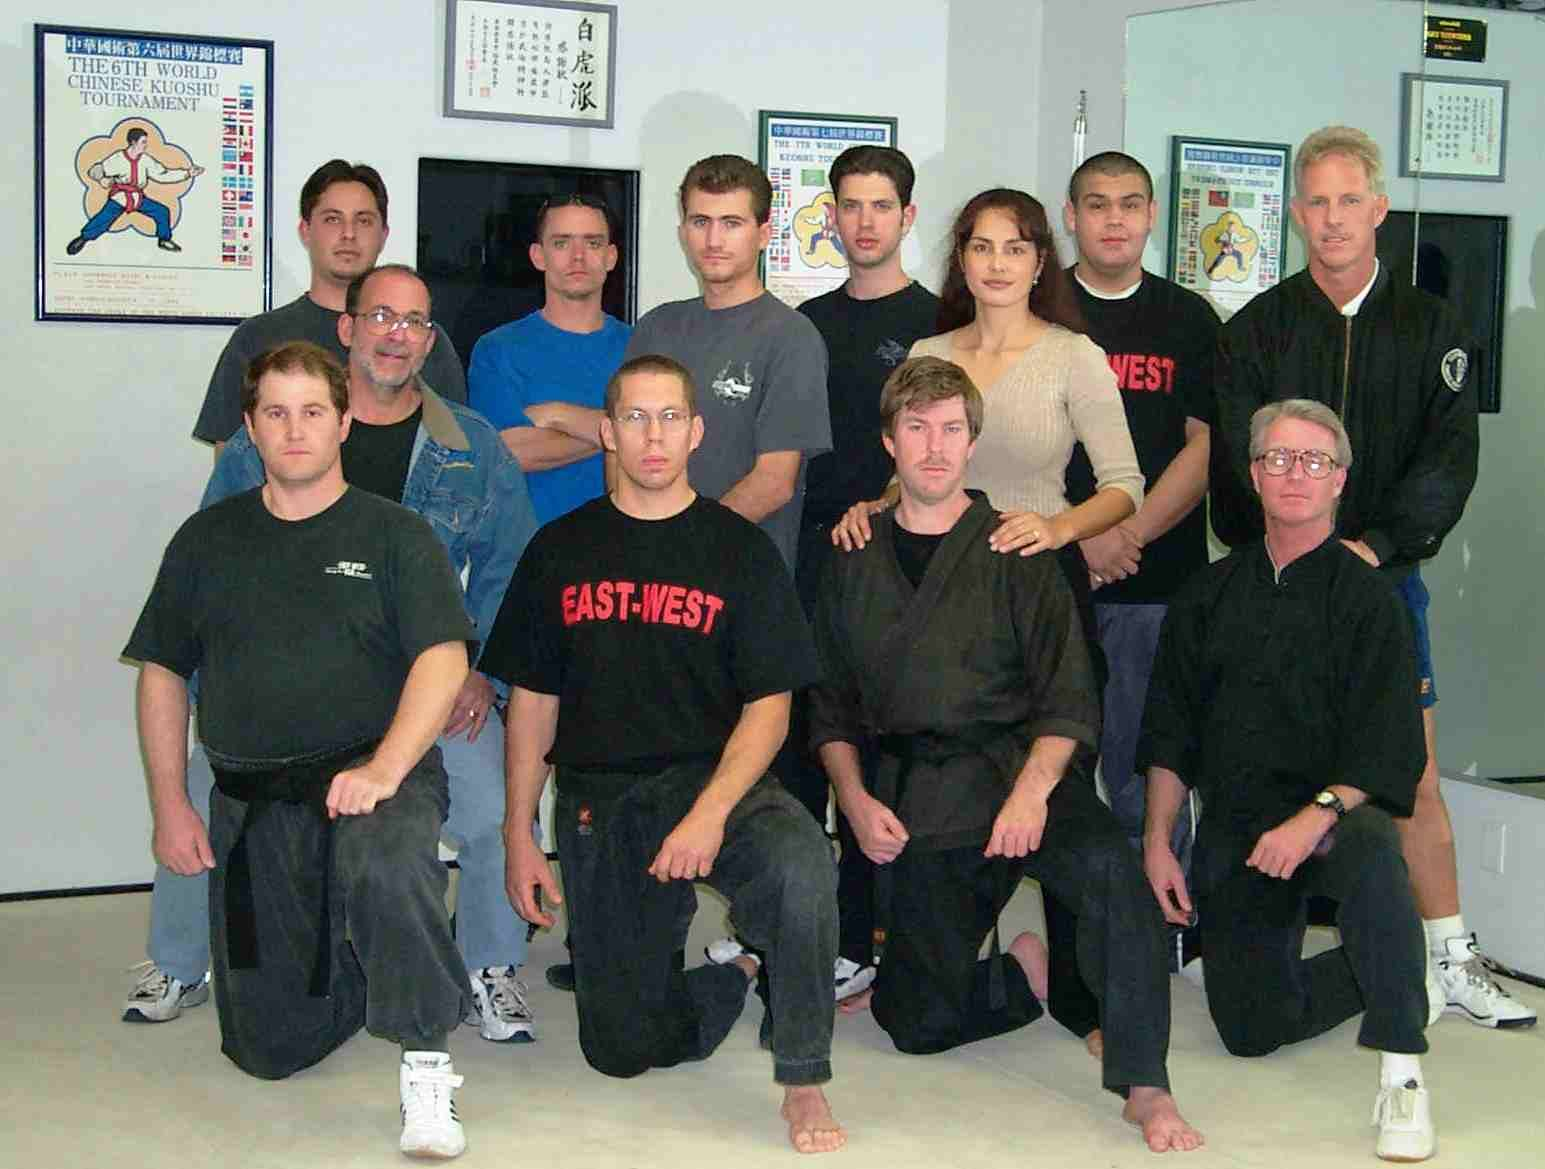 These are many of my classmates whom I had the great pleasure to learn from and train with many years ago. Mr. Shelden and Mr. Campbell are bottom right, respectively. My dad is middle row far left. Mr. York, whom I mentioned above, is third from left in the top row. With nearly limitless hip flexibility and impeccable form, Mr. York was nearly impossible to defeat in 1:1 sparring. I miss these folks. But not the ringing in my ears!